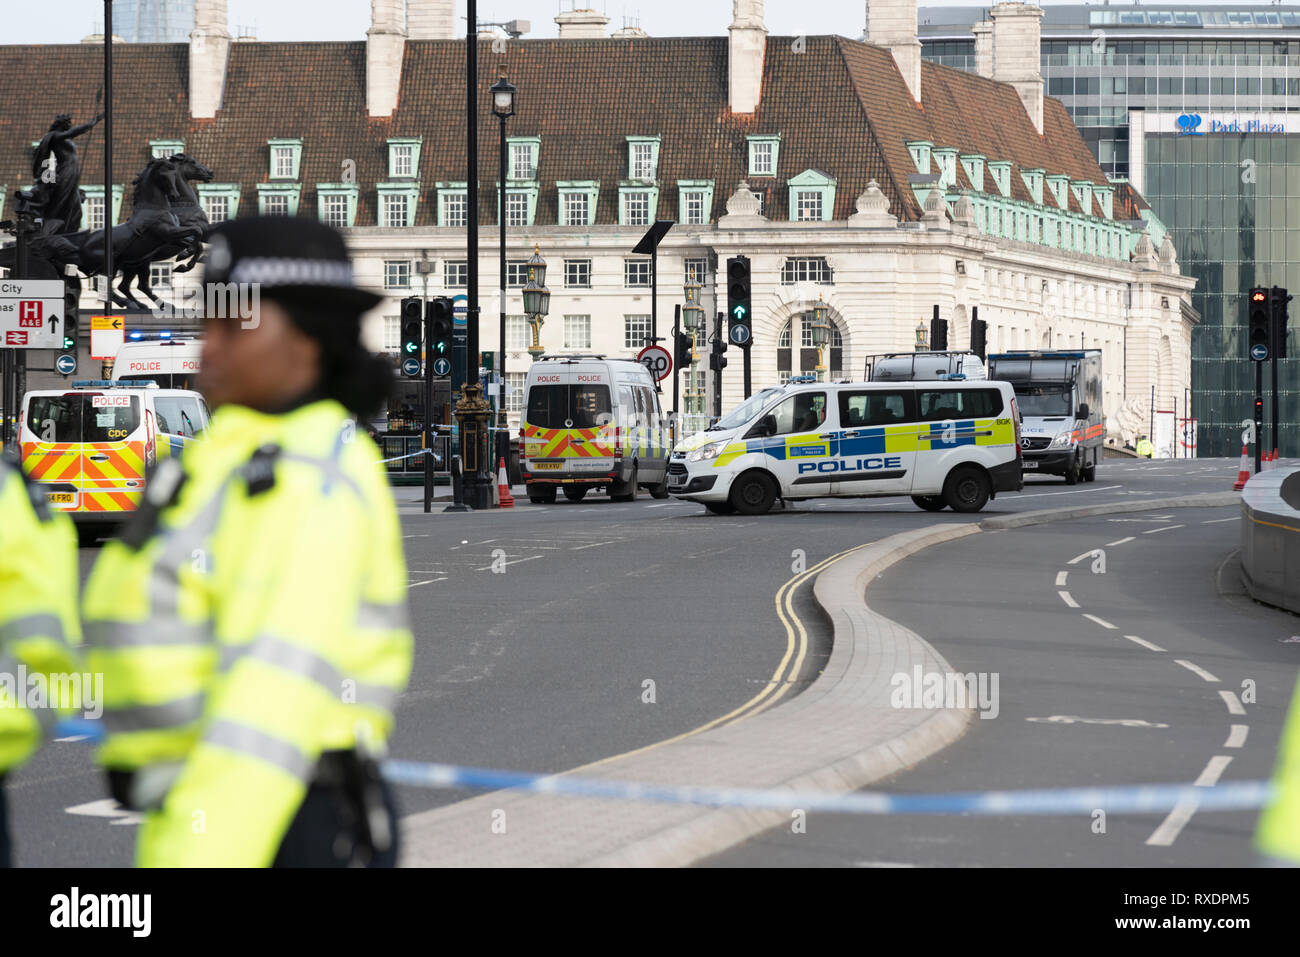 A suspicious car parked outside New Scotland Yard police headquarters on Victoria Embankment, Westminster, London, UK caused the police to lockdown and clear the the area around it and Westminster Bridge, including stopping river traffic on the Thames. Police broke the rear screen of the car to gain entry. Police cordoning off and clearing Westminster Bridge Road - Stock Image